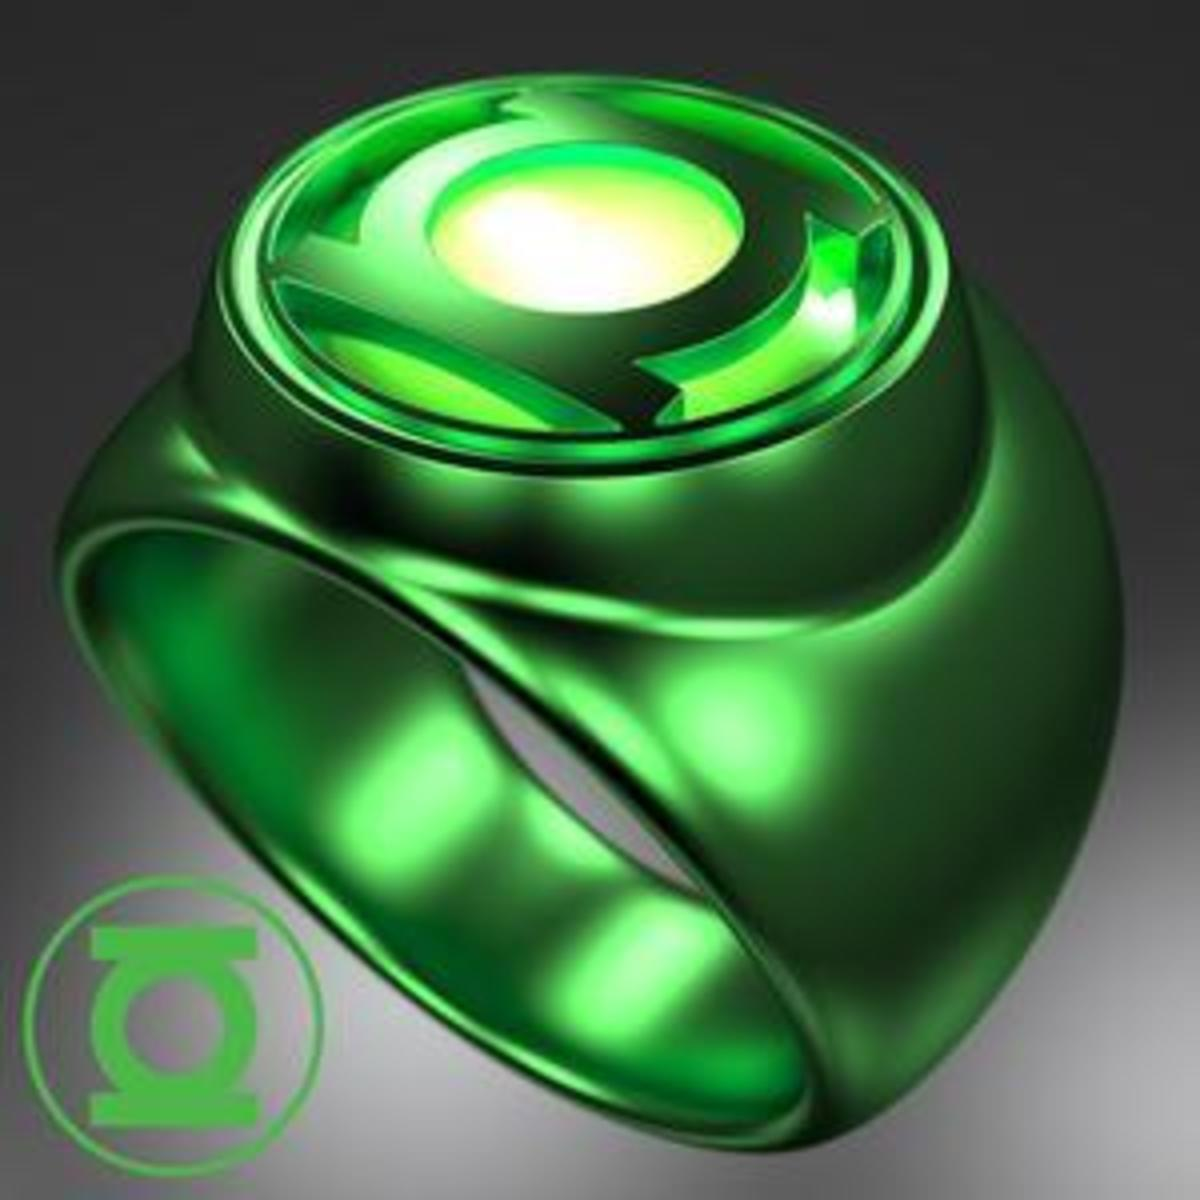 The Green Lantern Power Ring